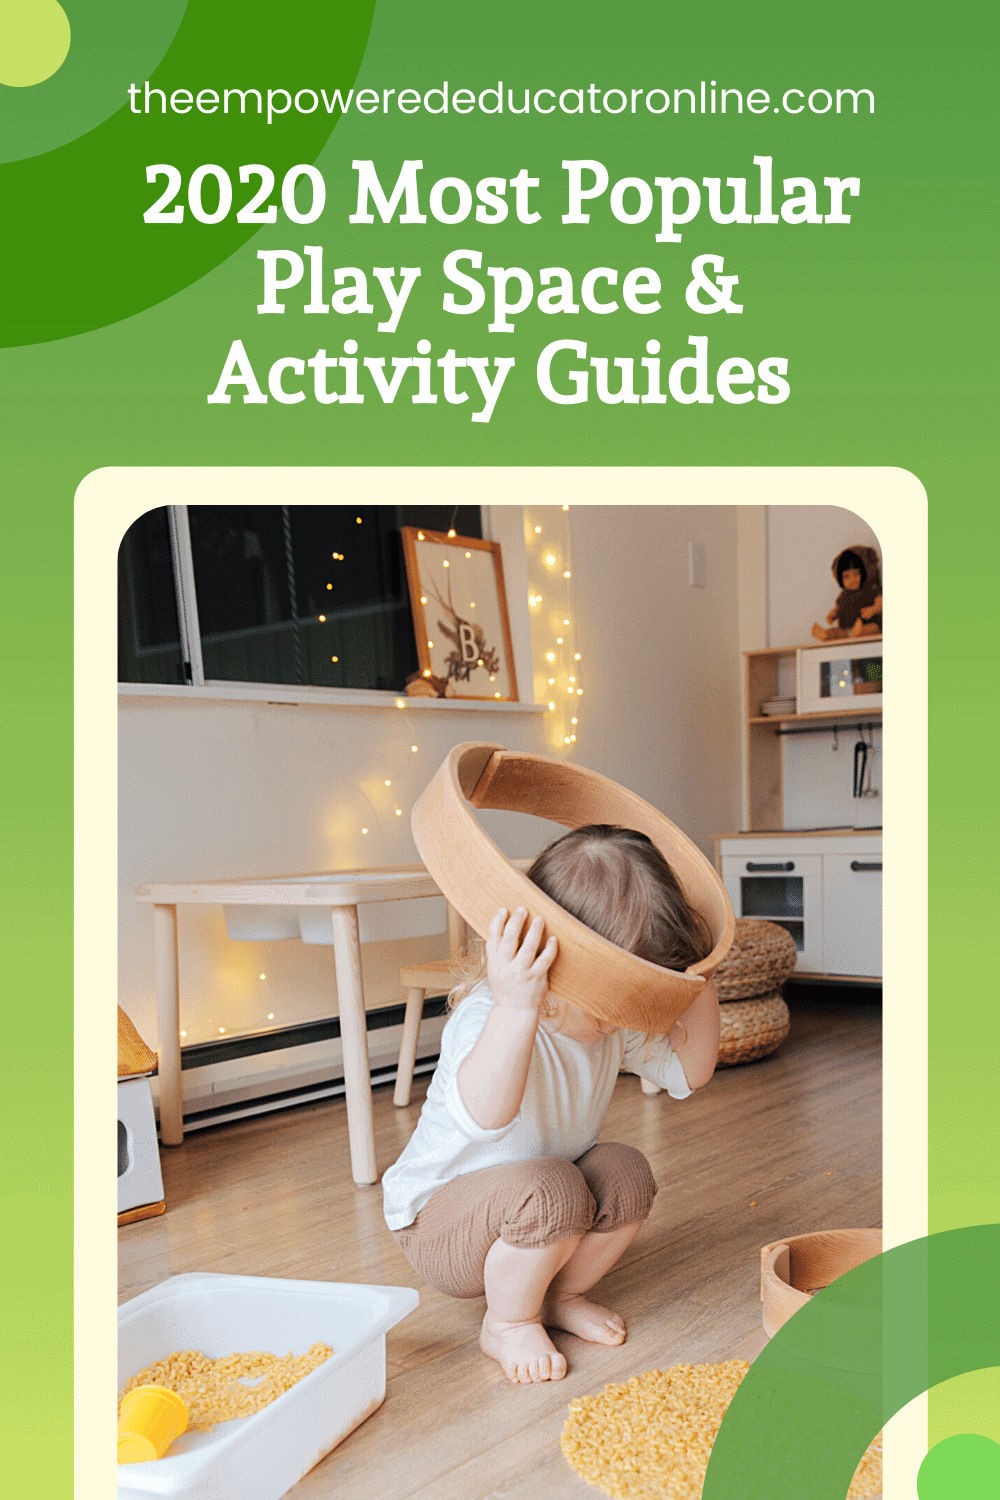 The Empowered Educator's Most Popular Play Spaces and Activities for early learning in 2020. Inspiration for educators, homeschool, daycare, ece